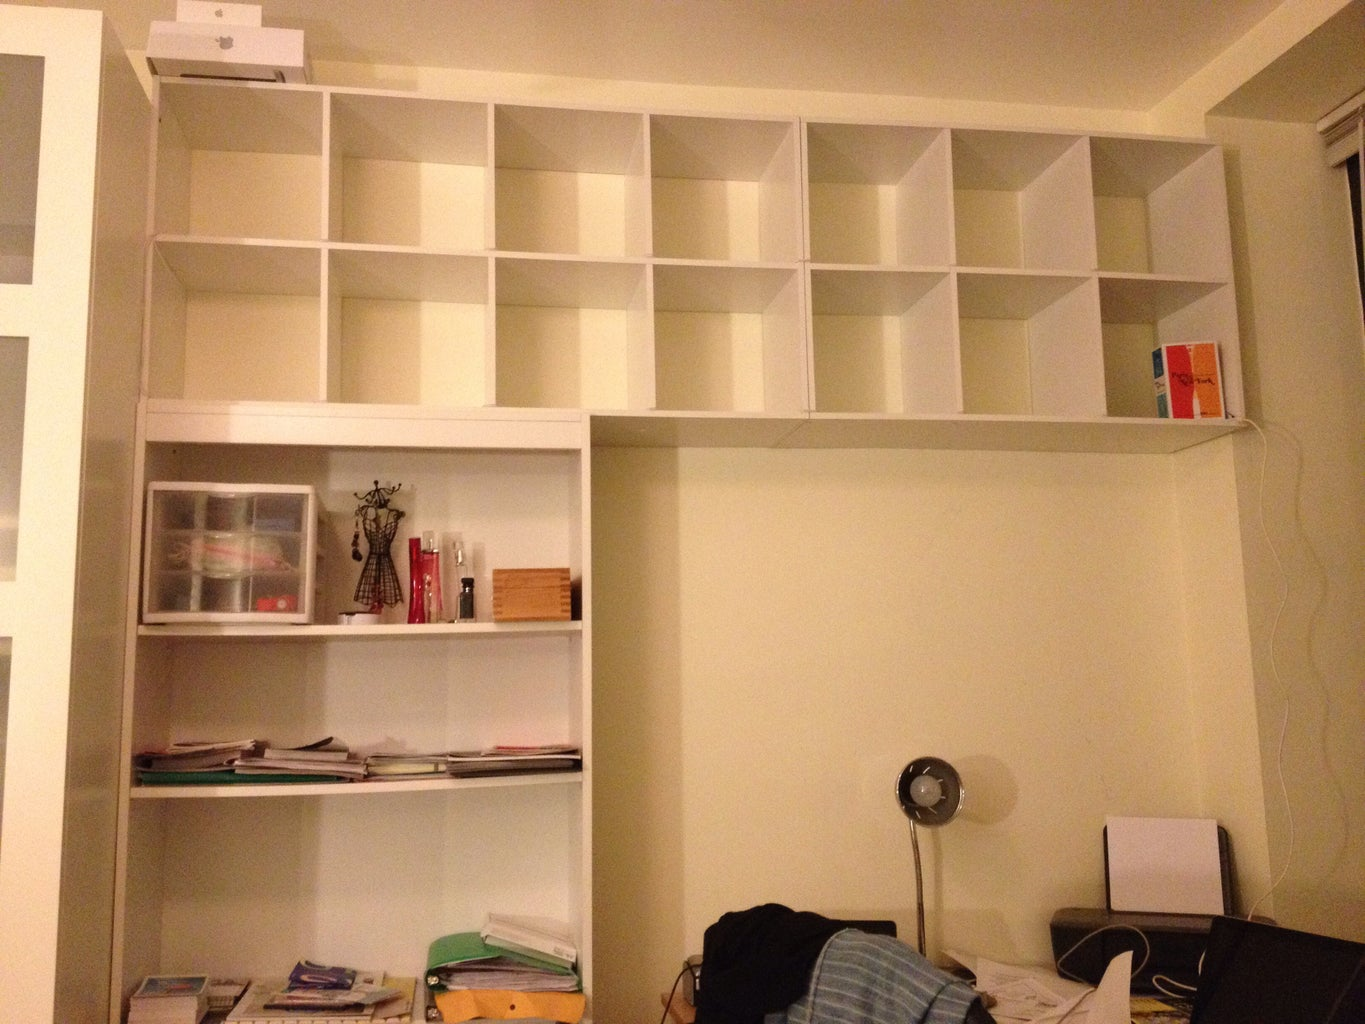 A Quick Note About the Shelf